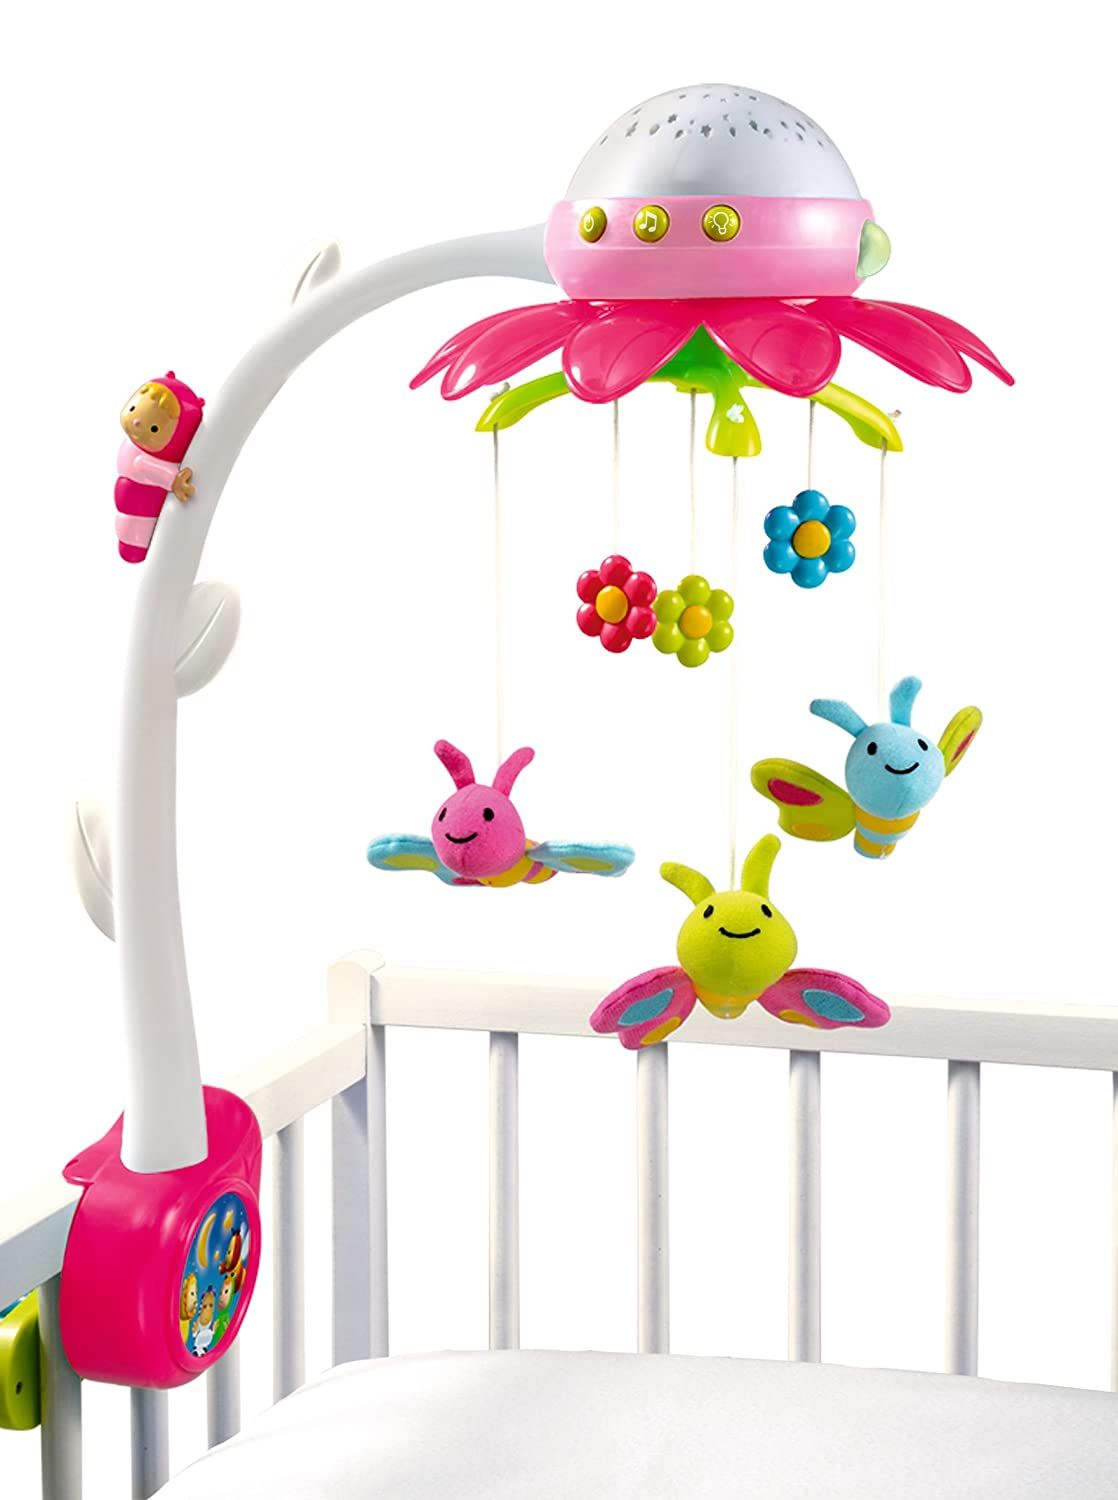 Smoby 7600211408 Cotoons Mobile Giocattolo Musicale, Rosa